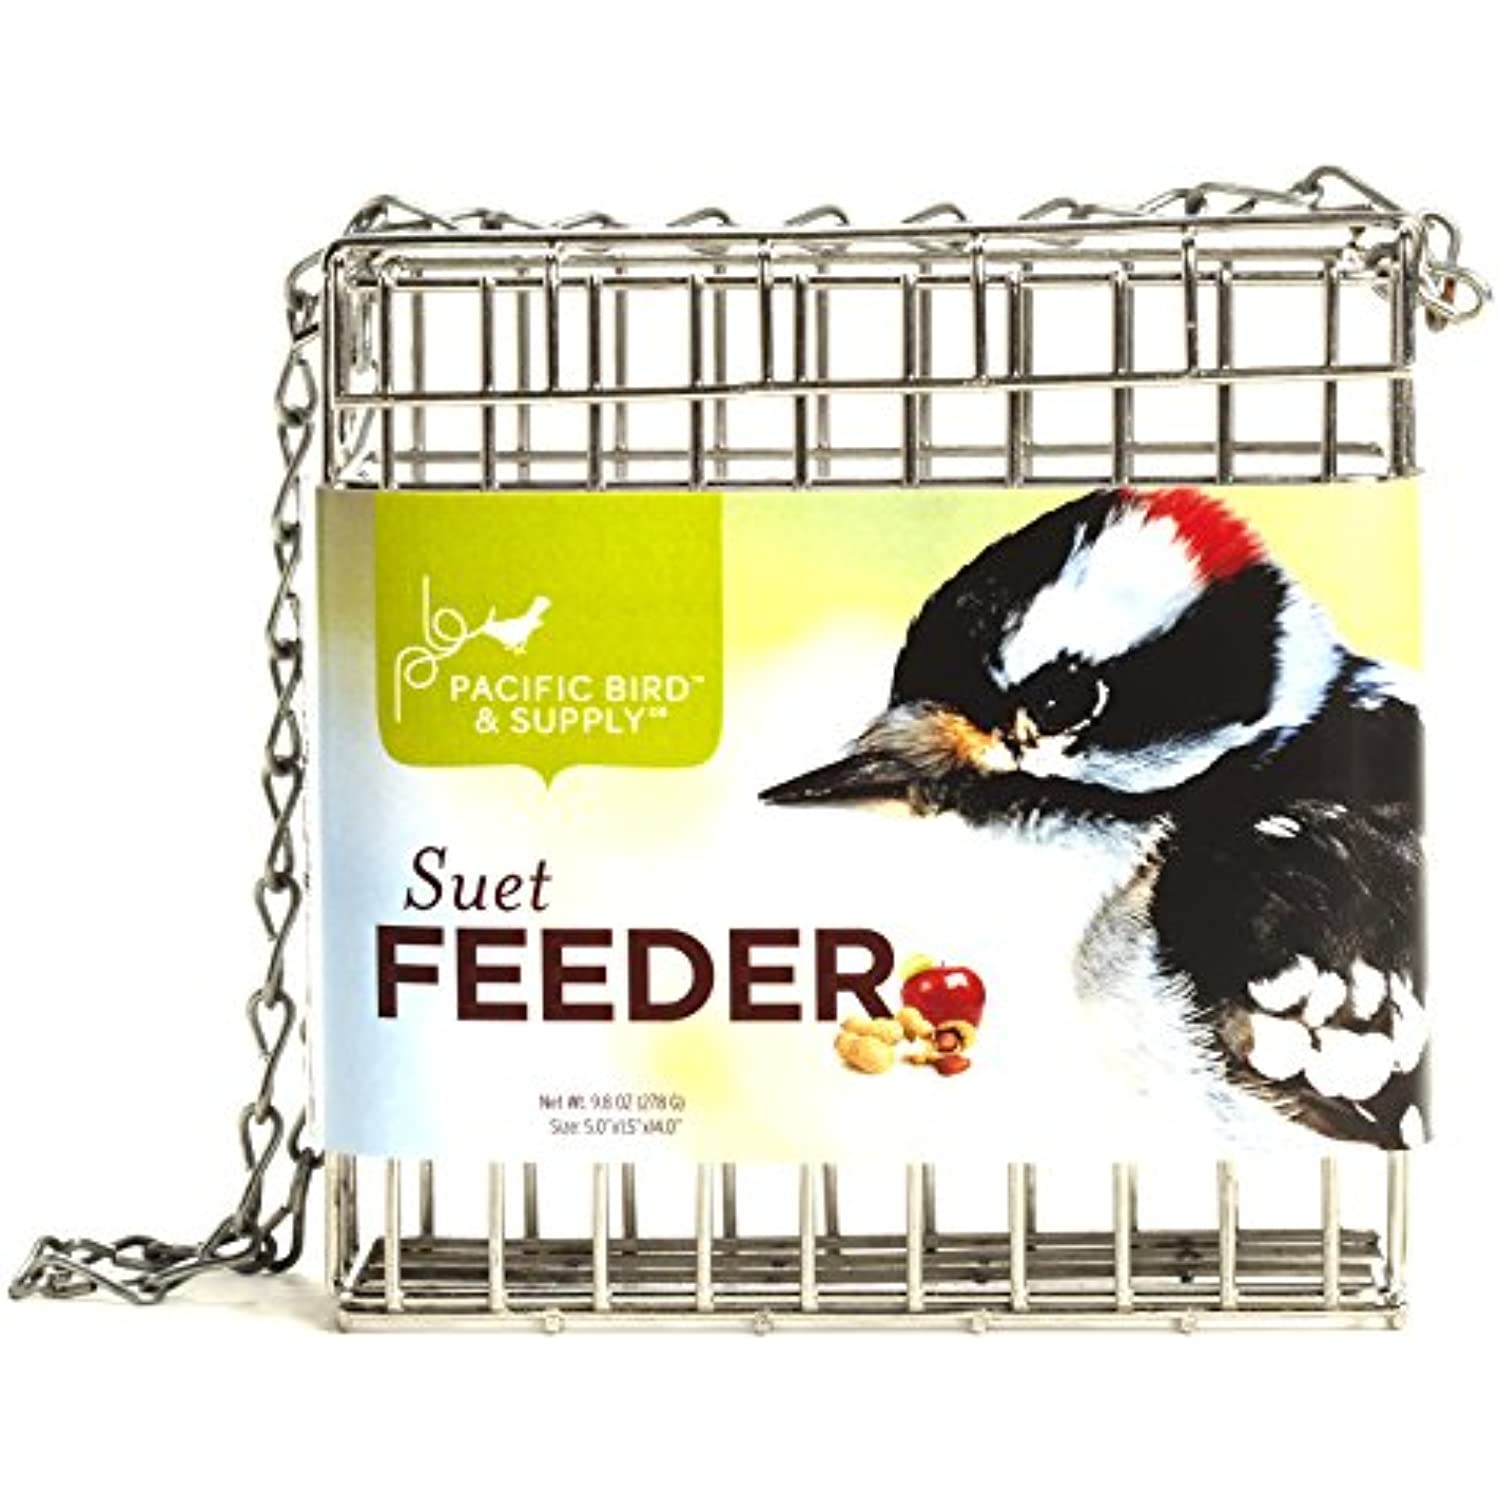 Pacific Pacific Pacific Bird & Supply Suet Cage Feeder Heavy Gauge Wire Fill & Hang Backyard b11711